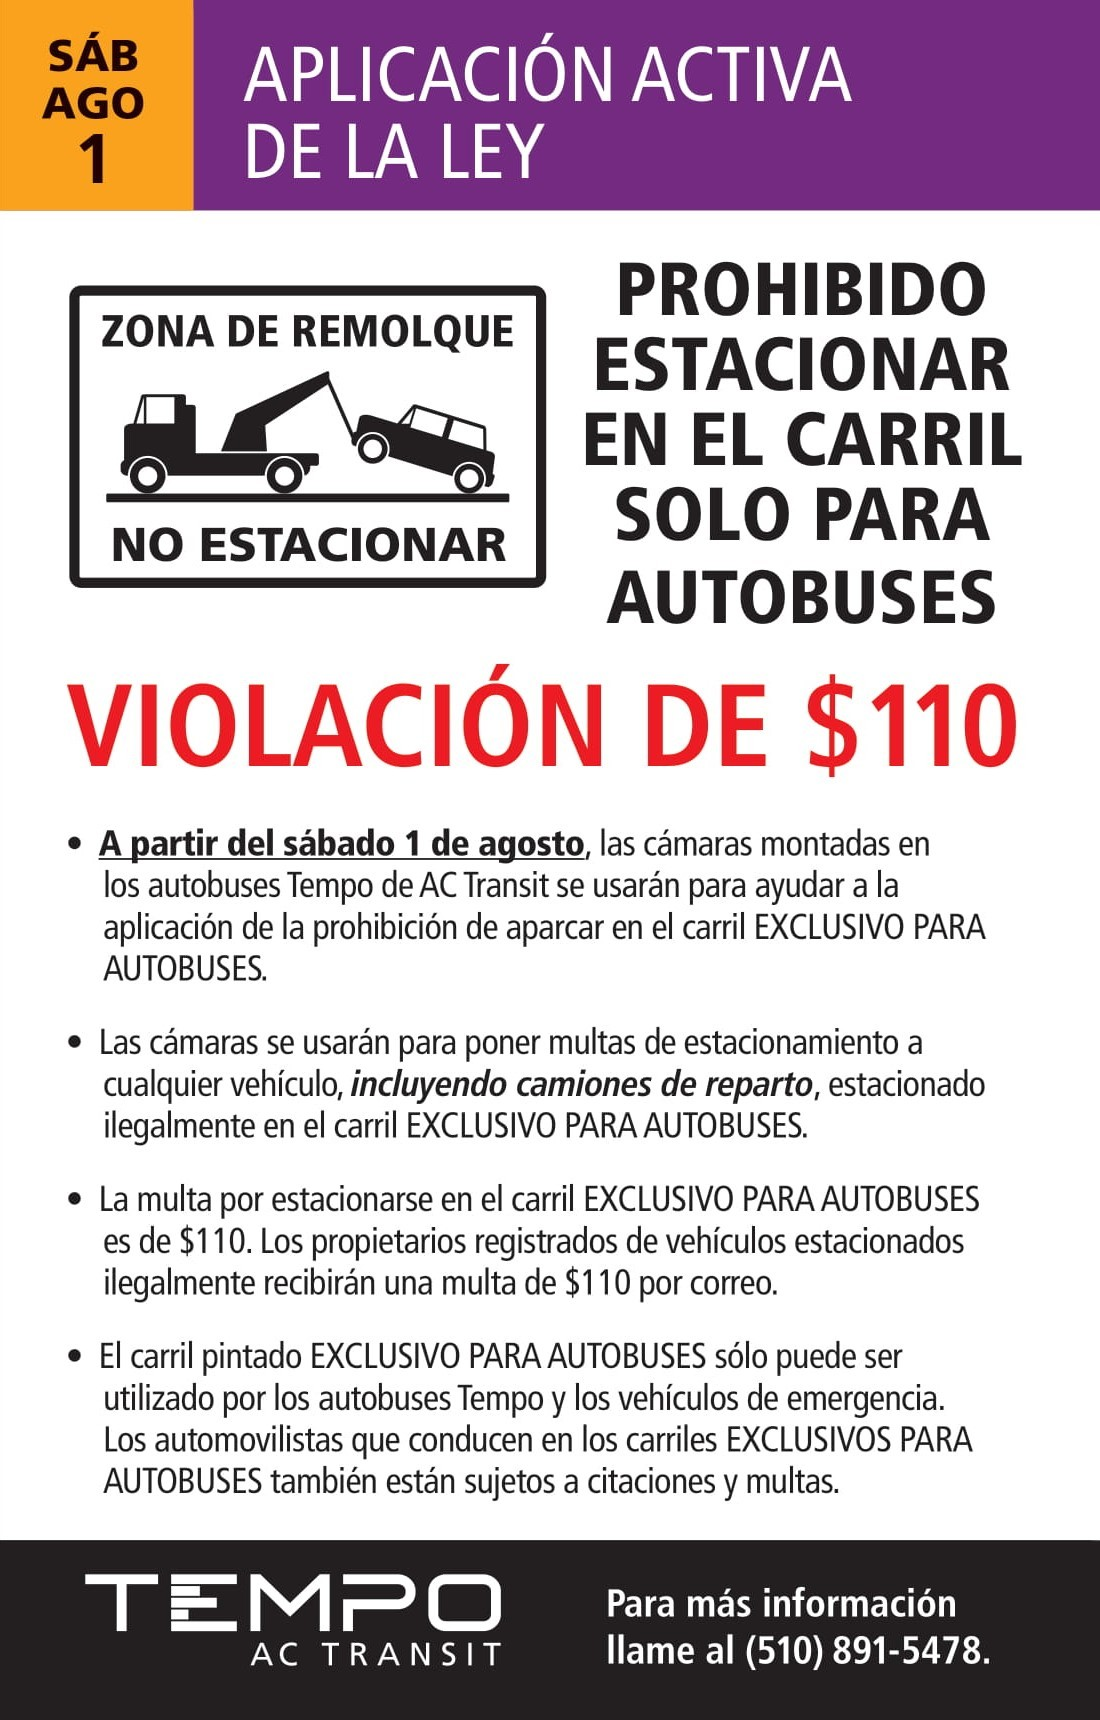 AC Transit notice about enforcement of the bus only lanes in Spanish